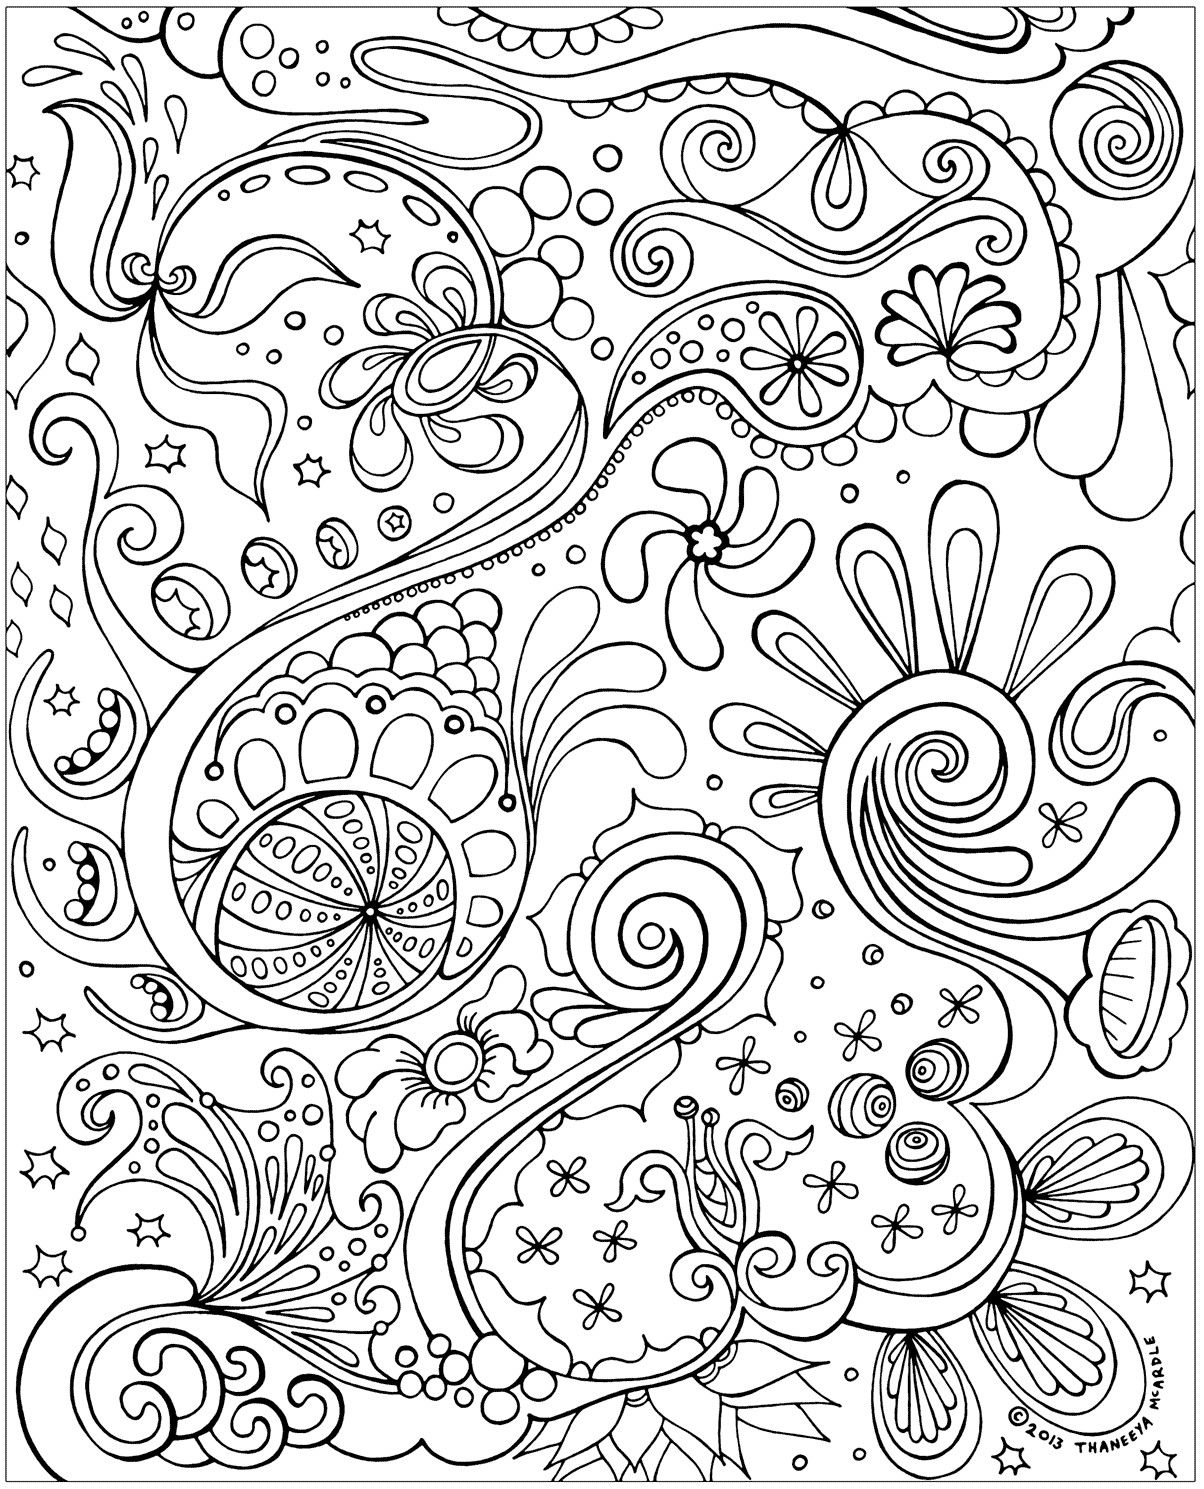 Free-Coloring-Pages-For-Adults-To-Print-240 | Colouring In ...